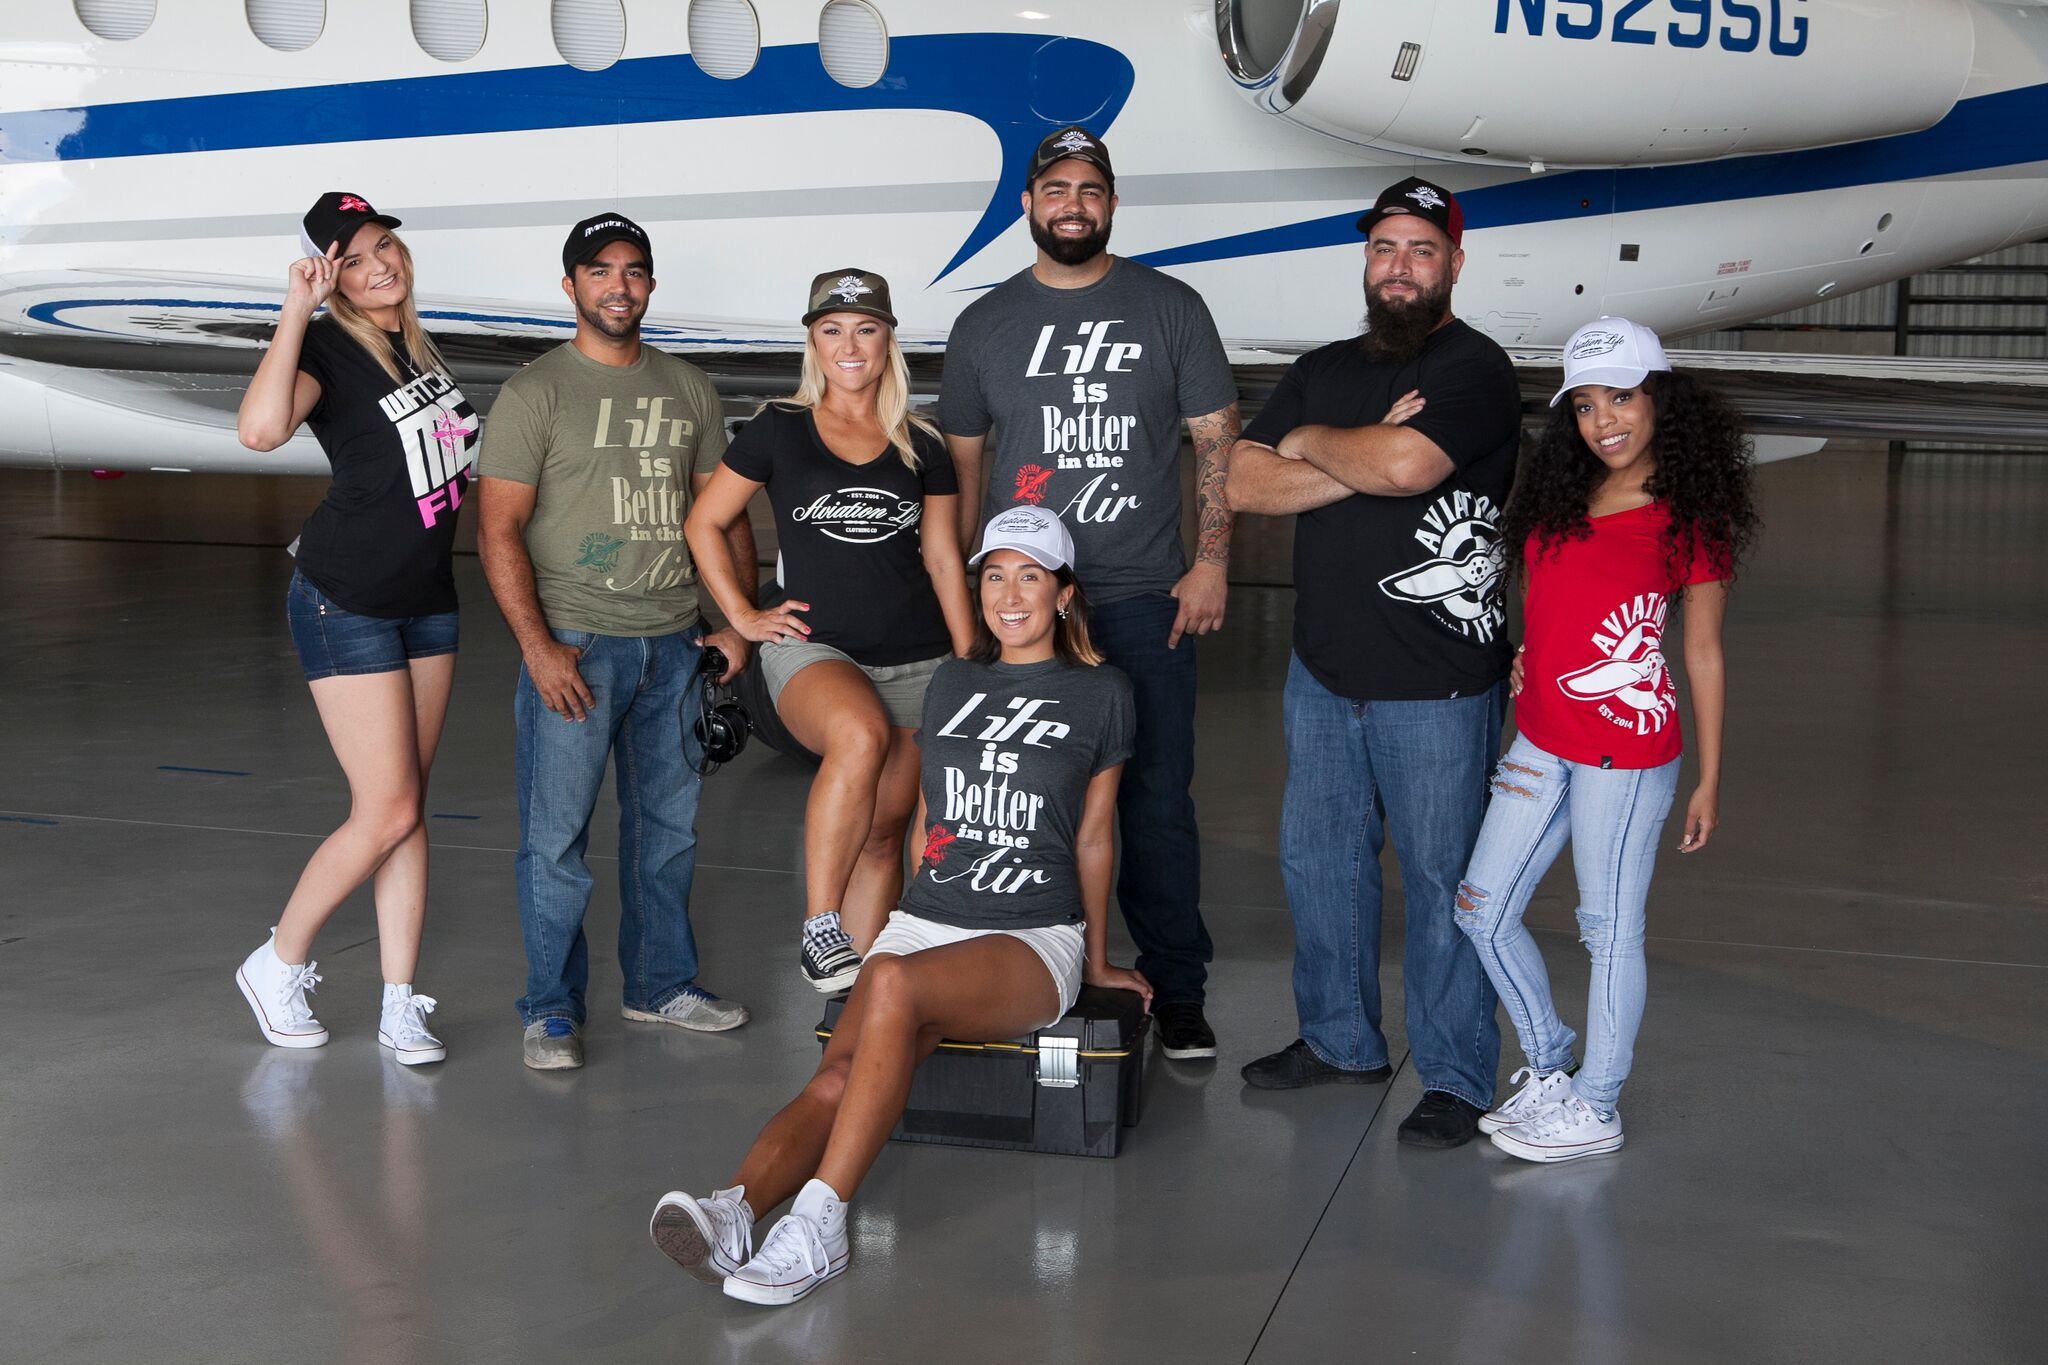 Our story - Aviation Life was established in 2014. Aviation Life is a clothing line for aviation enthusiasts and aviation people to be able to represent their love for aviation style in something we like call